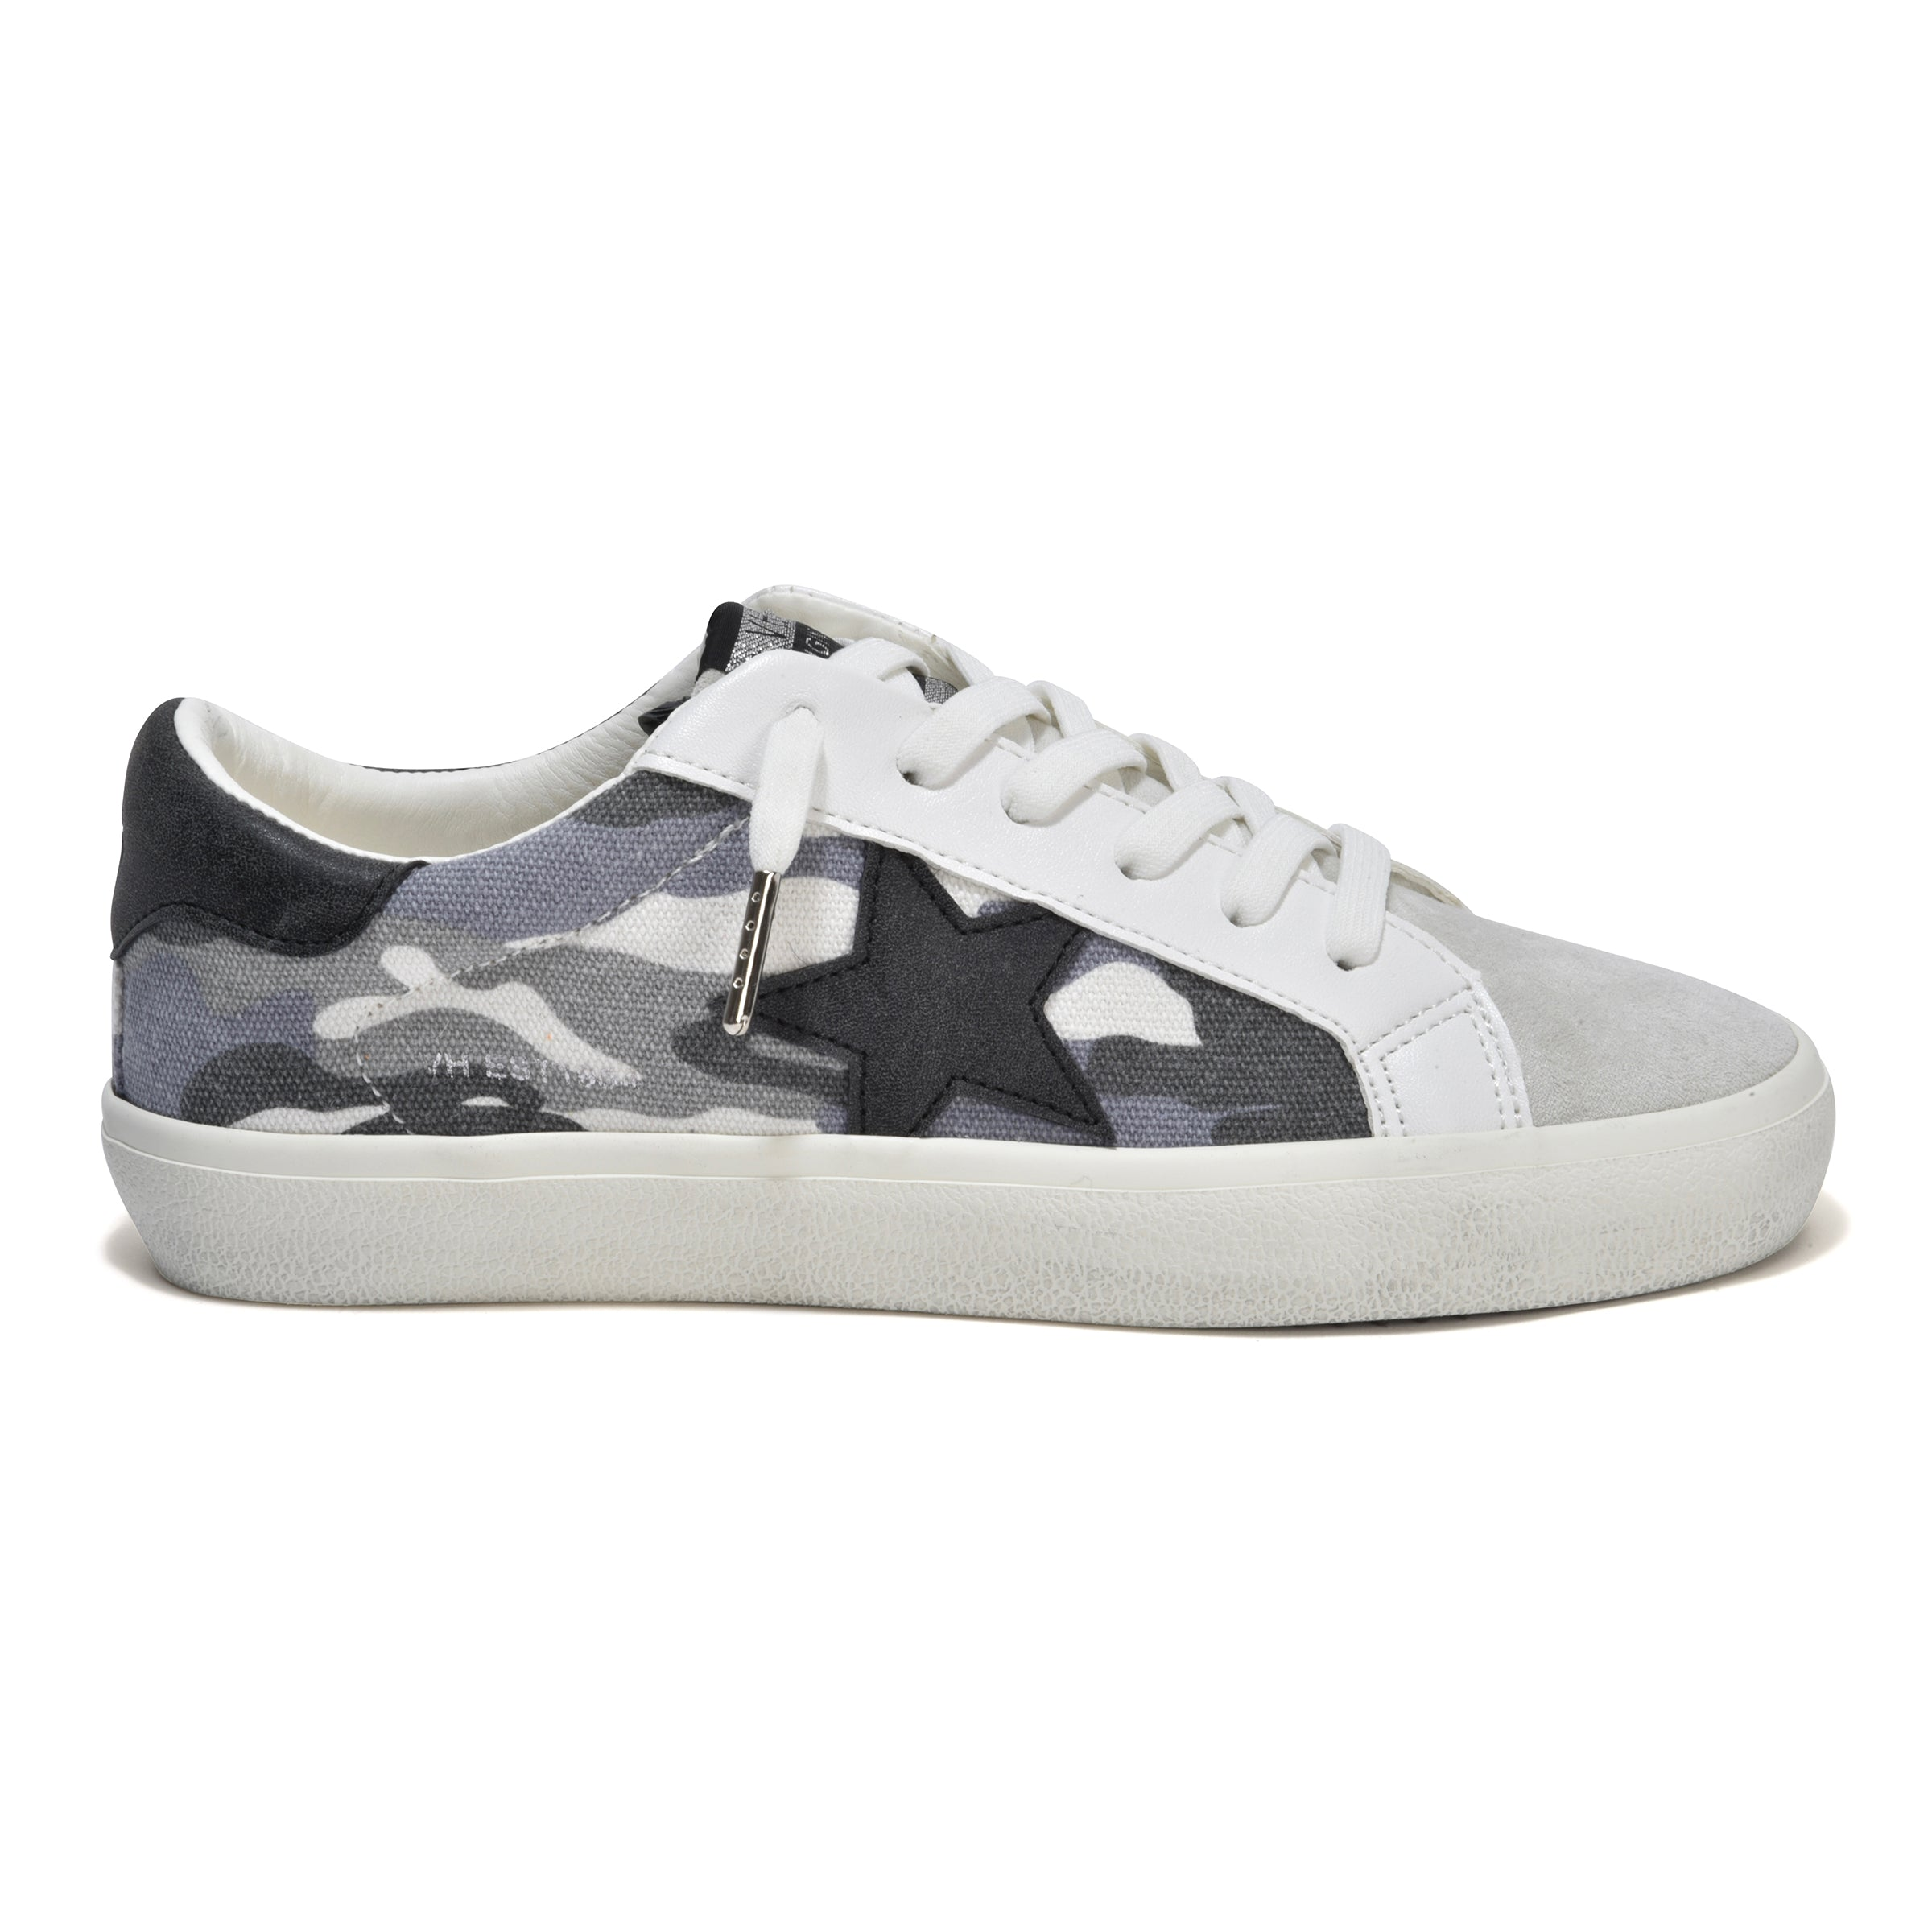 The Camo Lace Sneaker in Grey